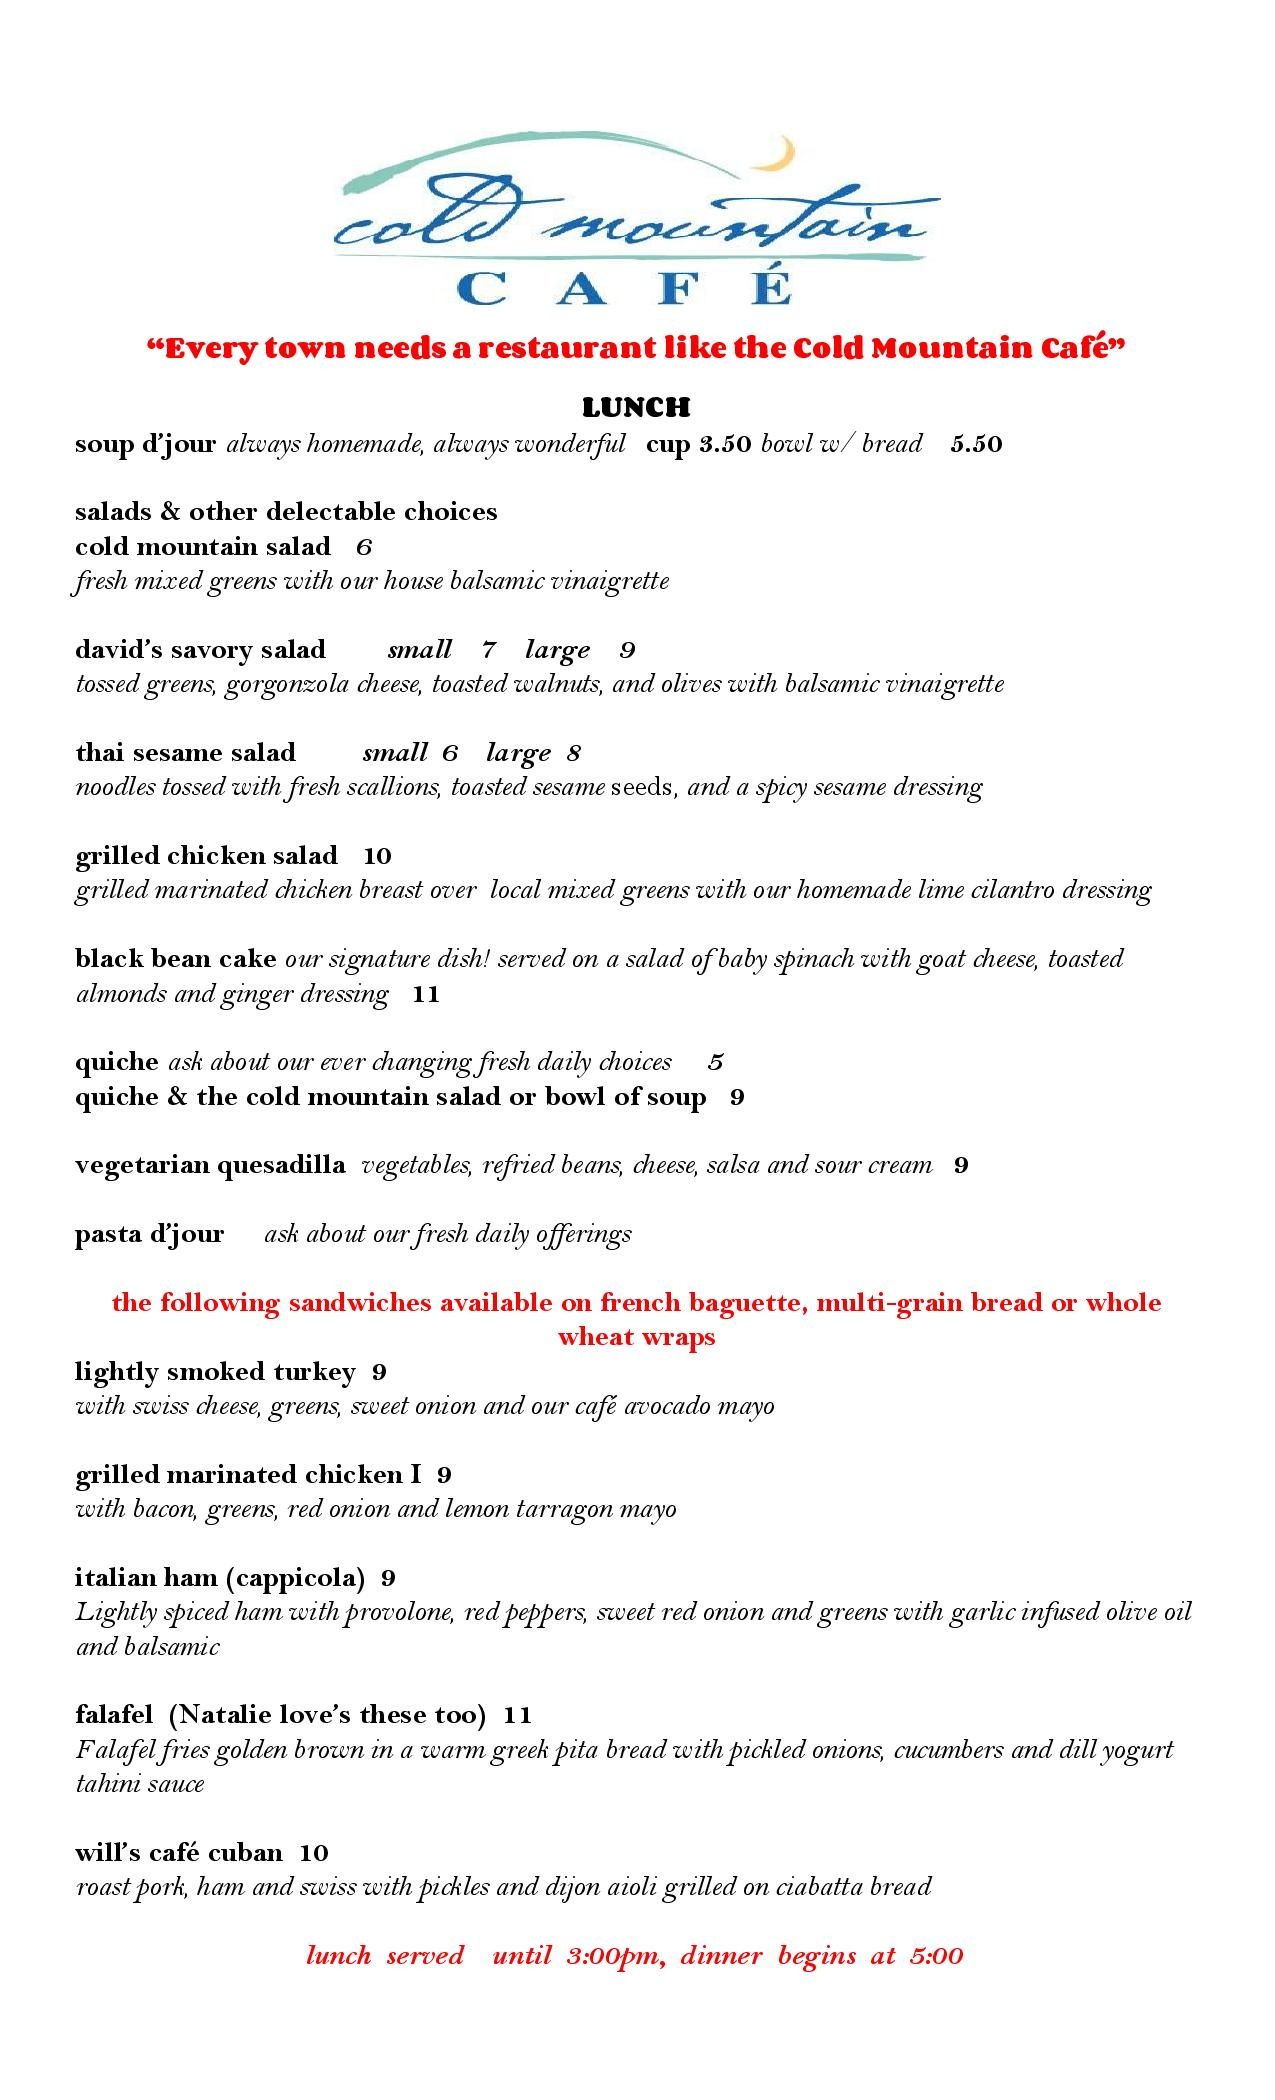 cold mountain cafe lunch menu